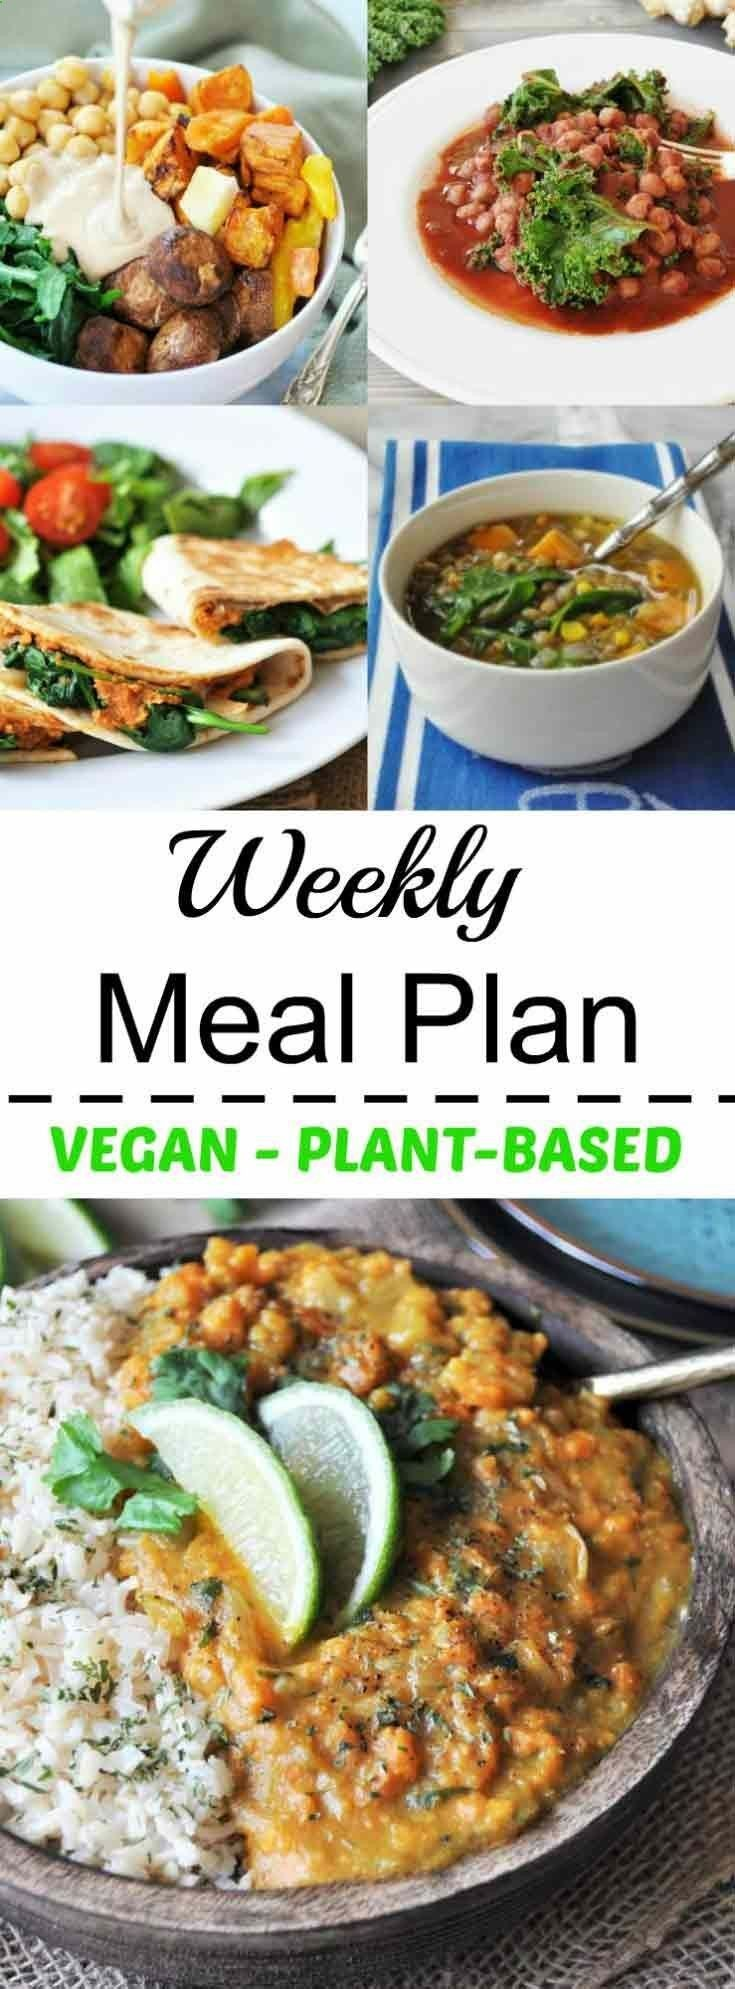 Eat Stop Eat To Loss Weight - Vegan weekly meal plan. Healthy, fast, and easy plant-based dinners for weeknight dinners - In Just One Day This Simple Strategy Frees You From Complicated Diet Rules - And Eliminates Rebound Weight Gain